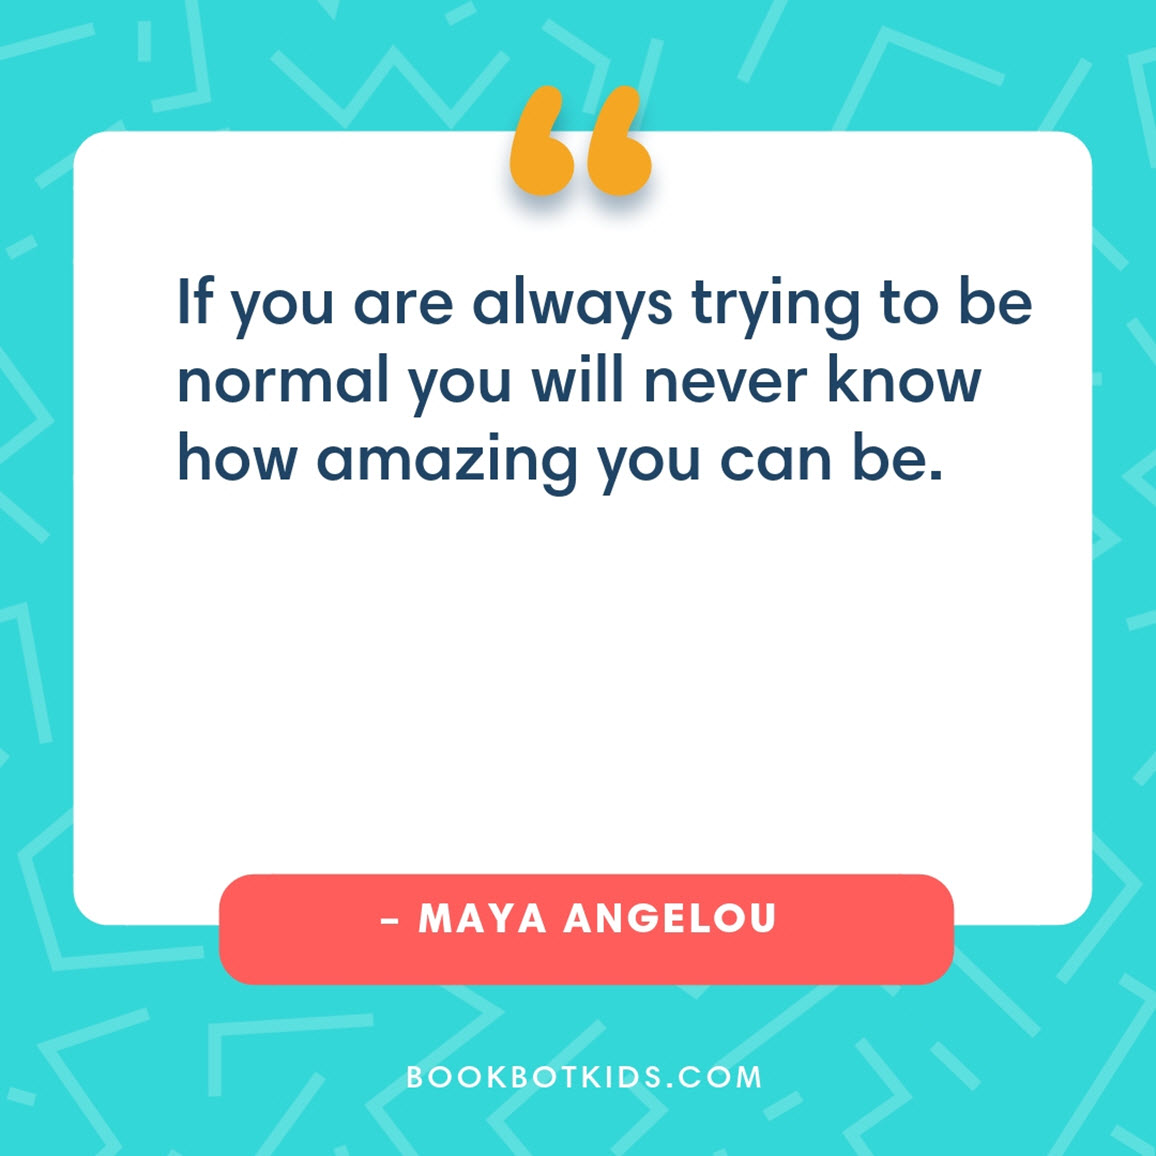 If you are always trying to be normal you will never know how amazing you can be. – Maya Angelou